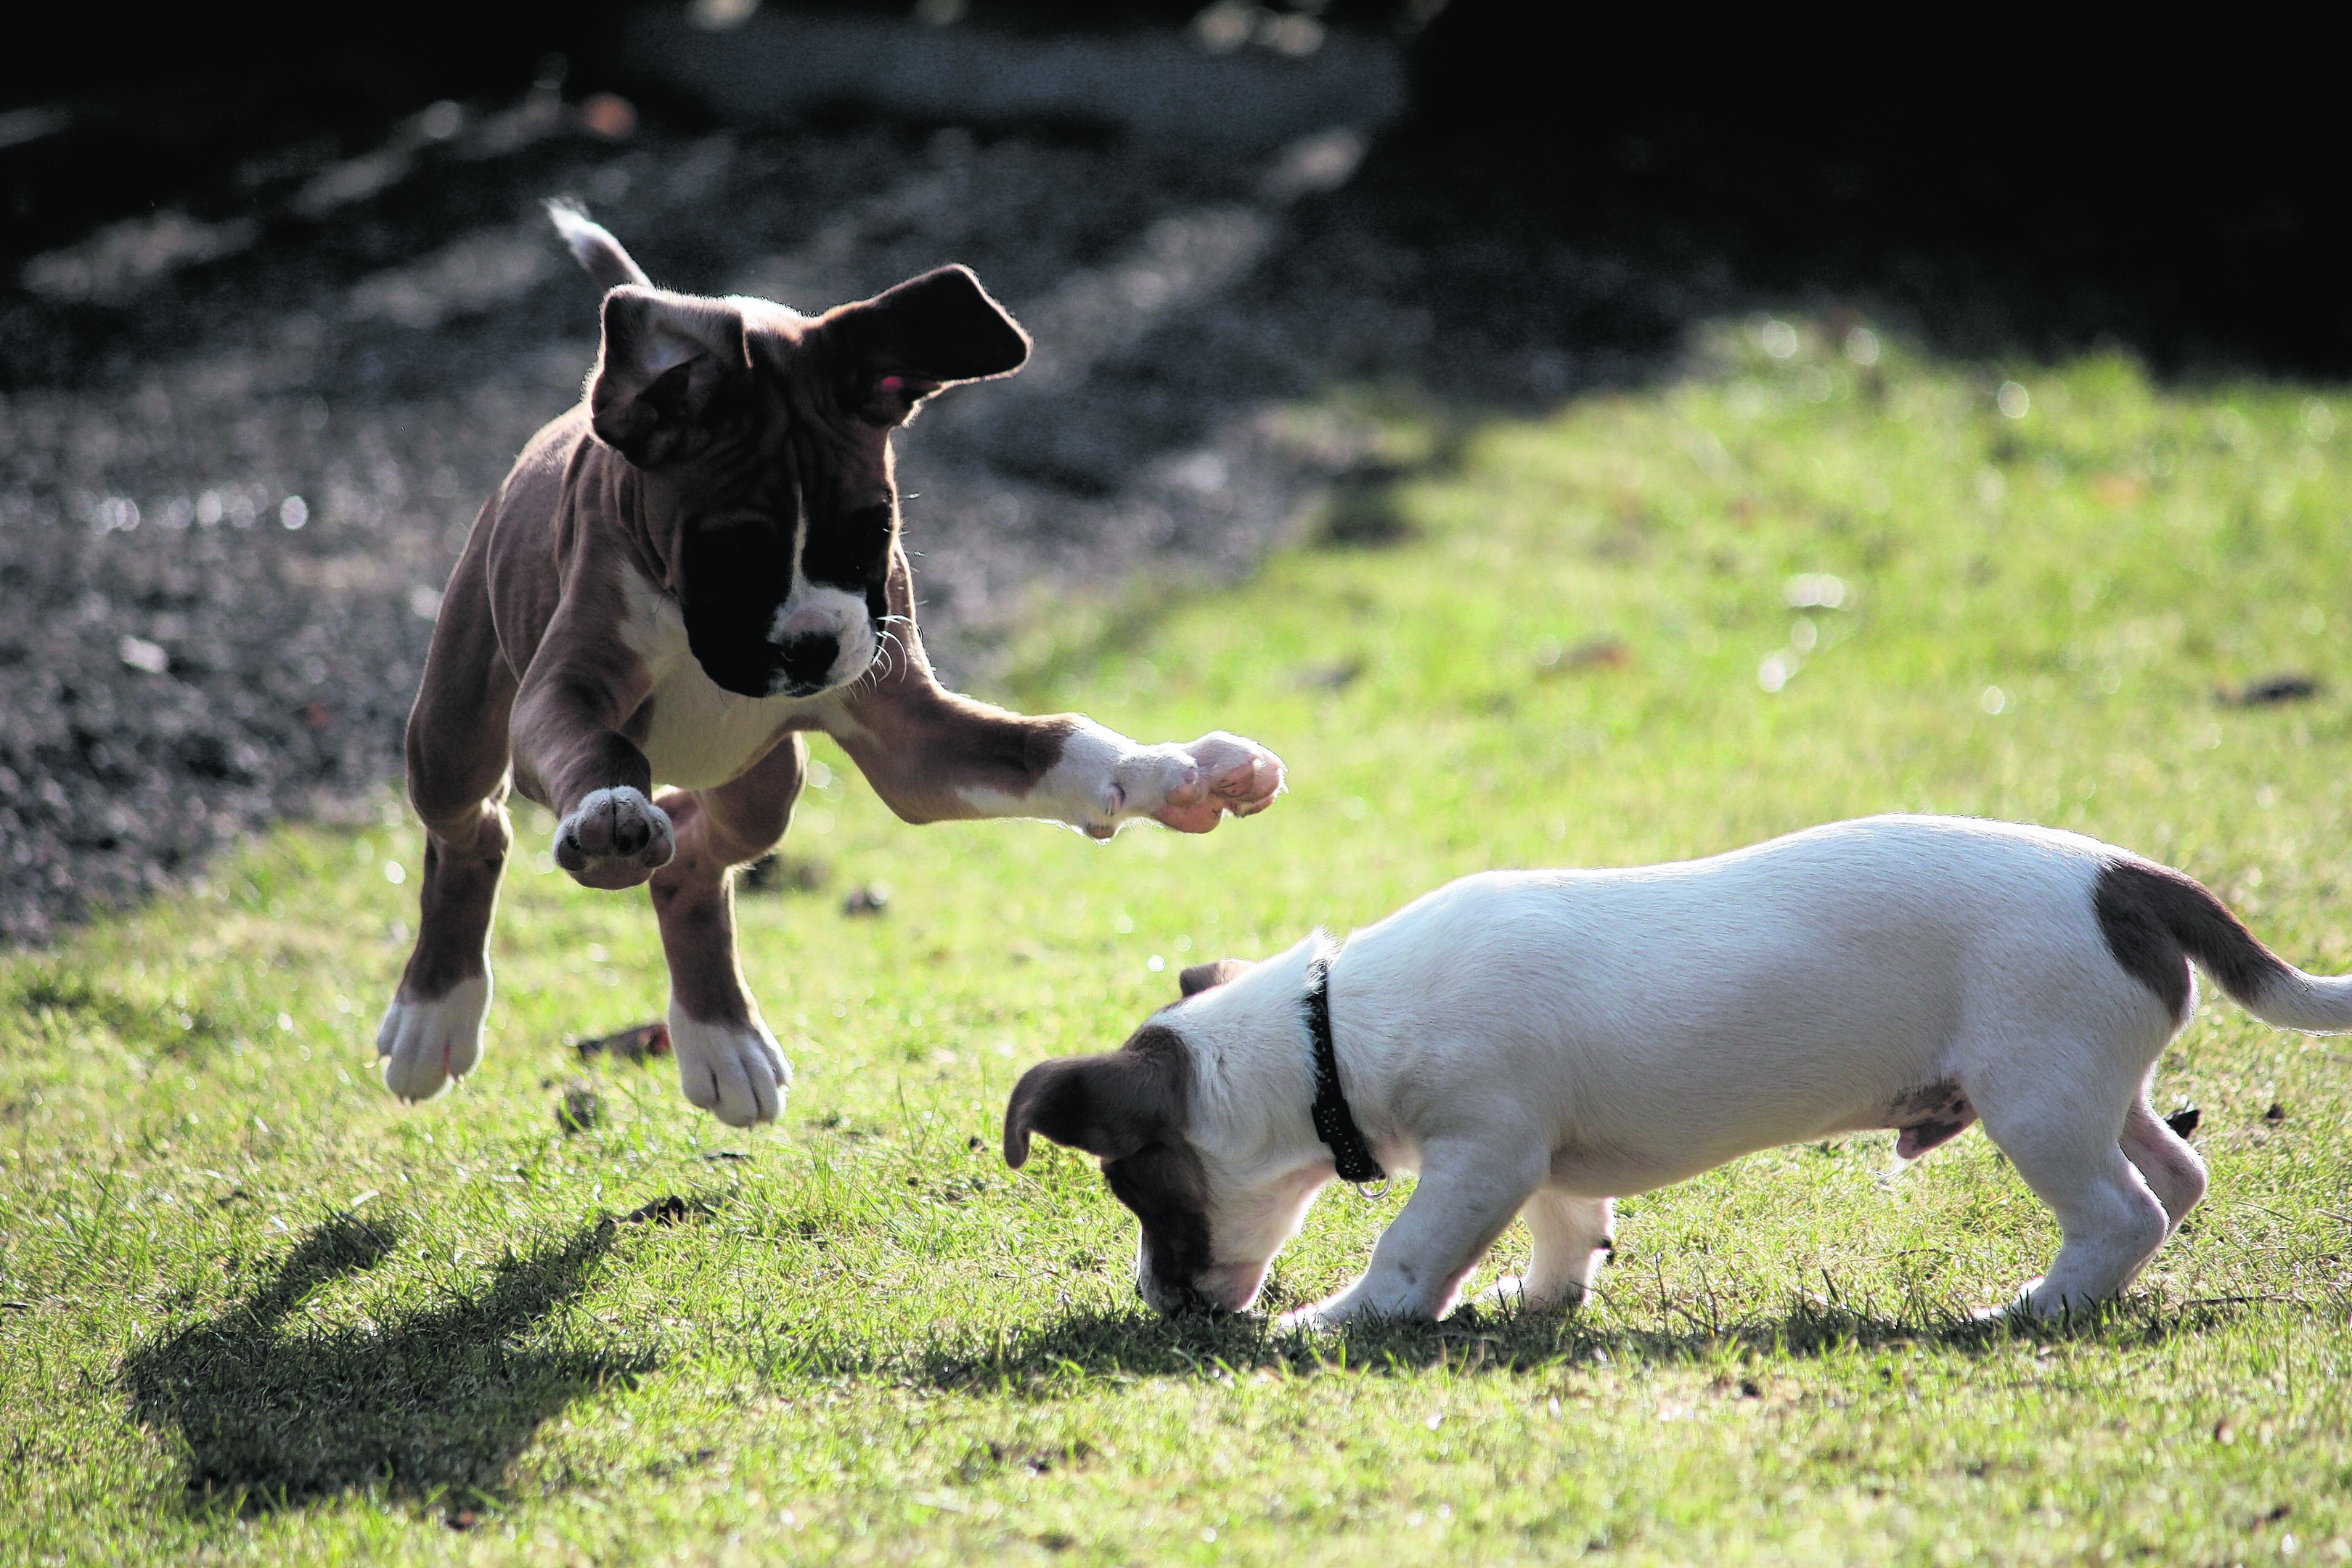 Rio the boxer puppy and Toby the Jack Russell puppy live with Lucy and Jamie Adam at Knock, Huntly. These cute puppies are the canvas winners this week.